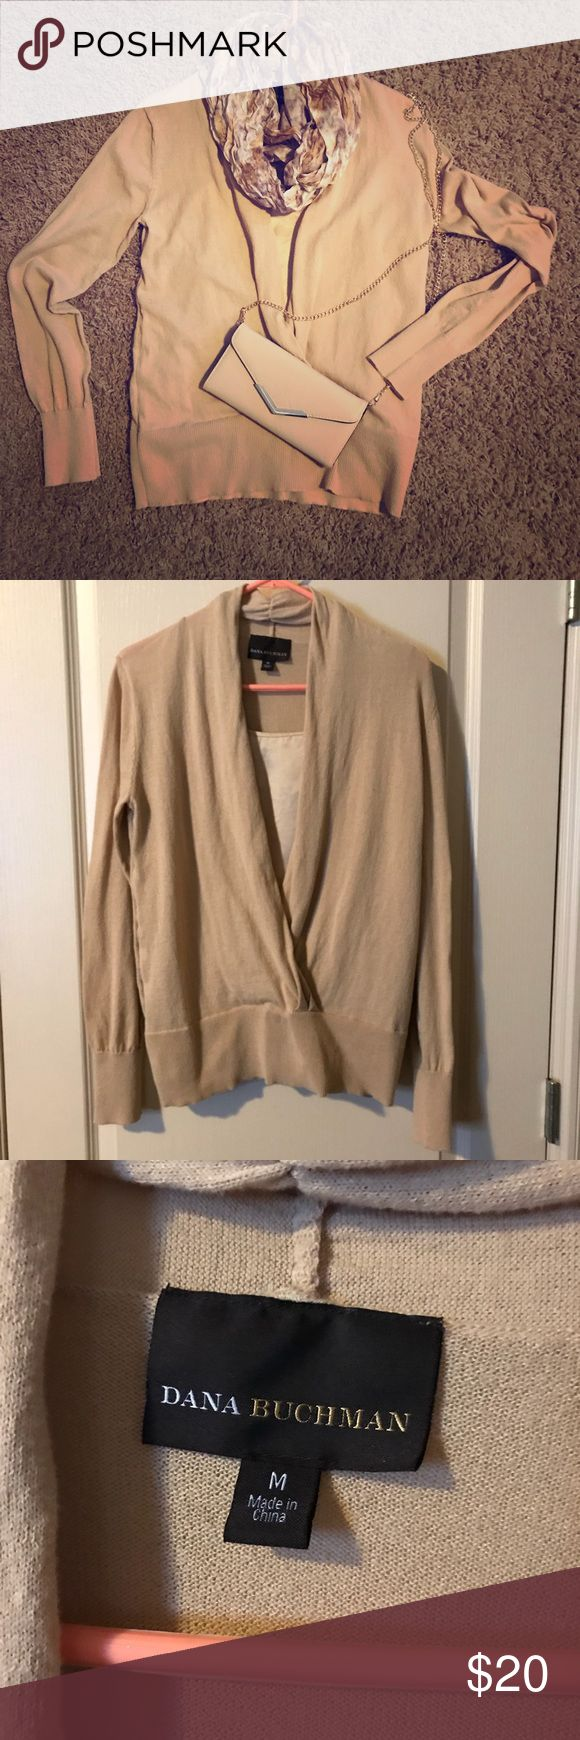 Layered look preloved lightweight gold sweater. Vneck sweater with built in gold cami. Great condition. Very mild pilling under arms. No stains or pulls. First pic for styling. Other items available in my closet. Non smoking home Dana Buchman Tops Blouses